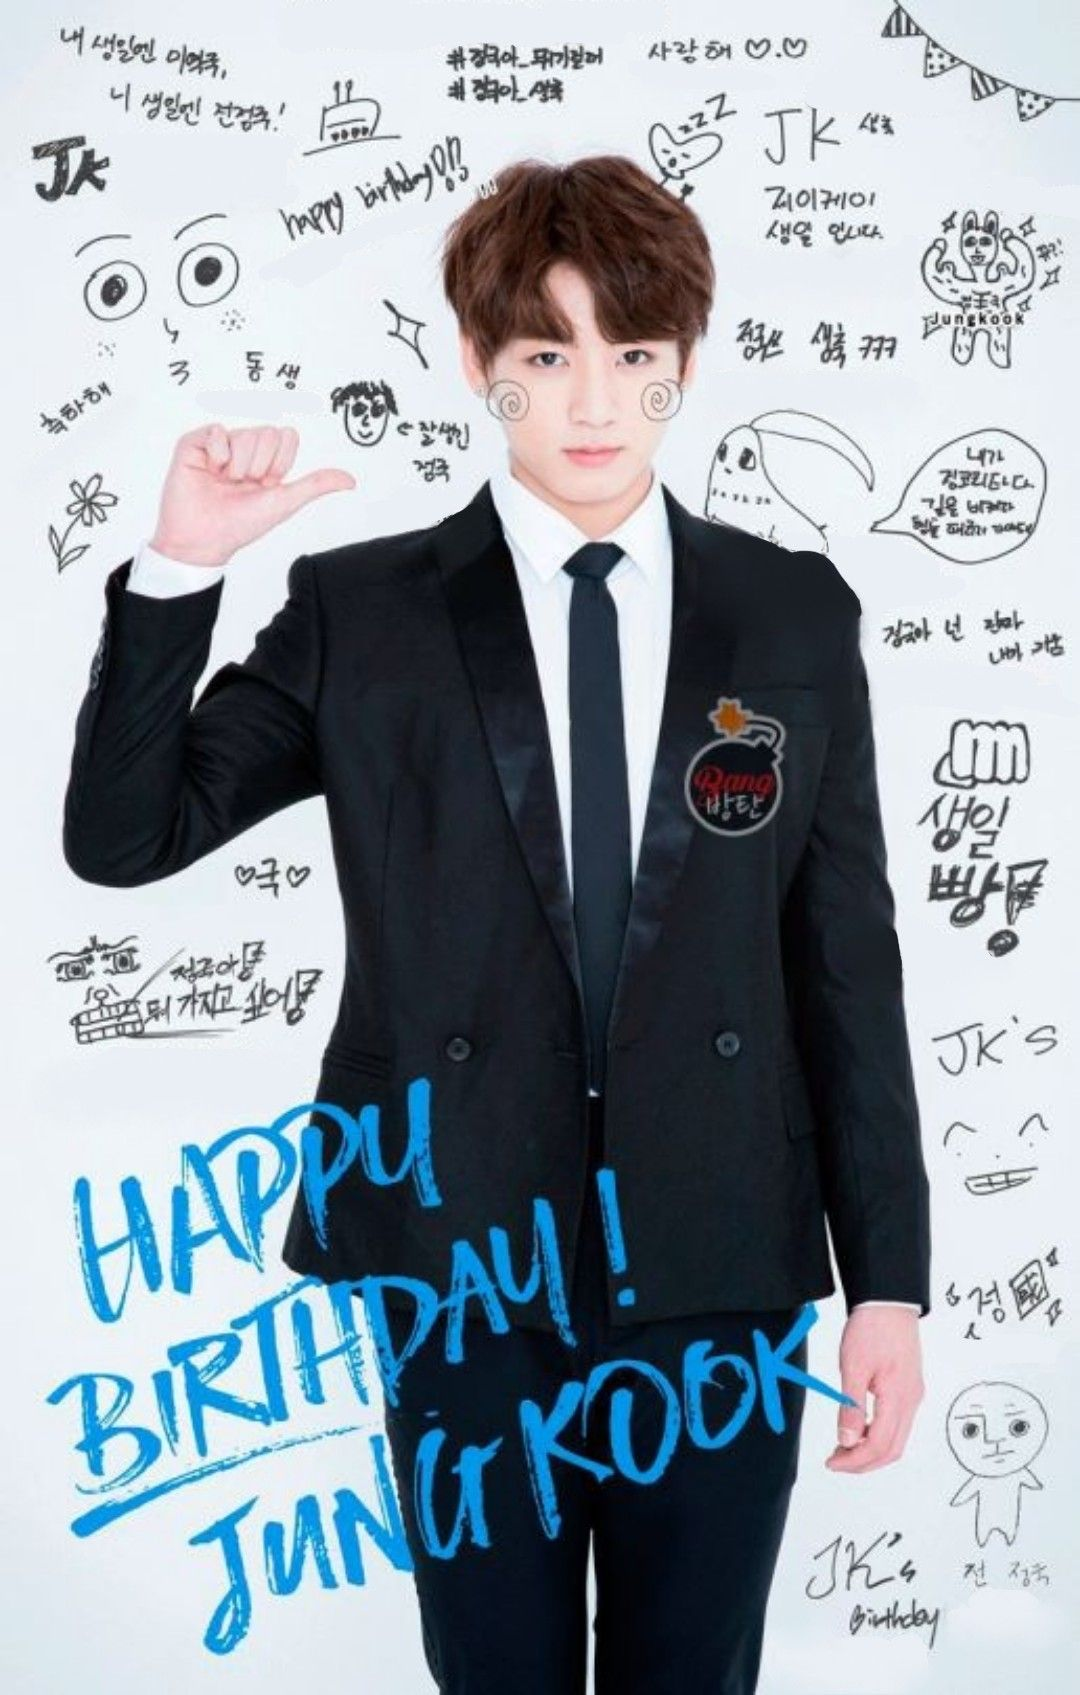 Happy birthday Jungkook!